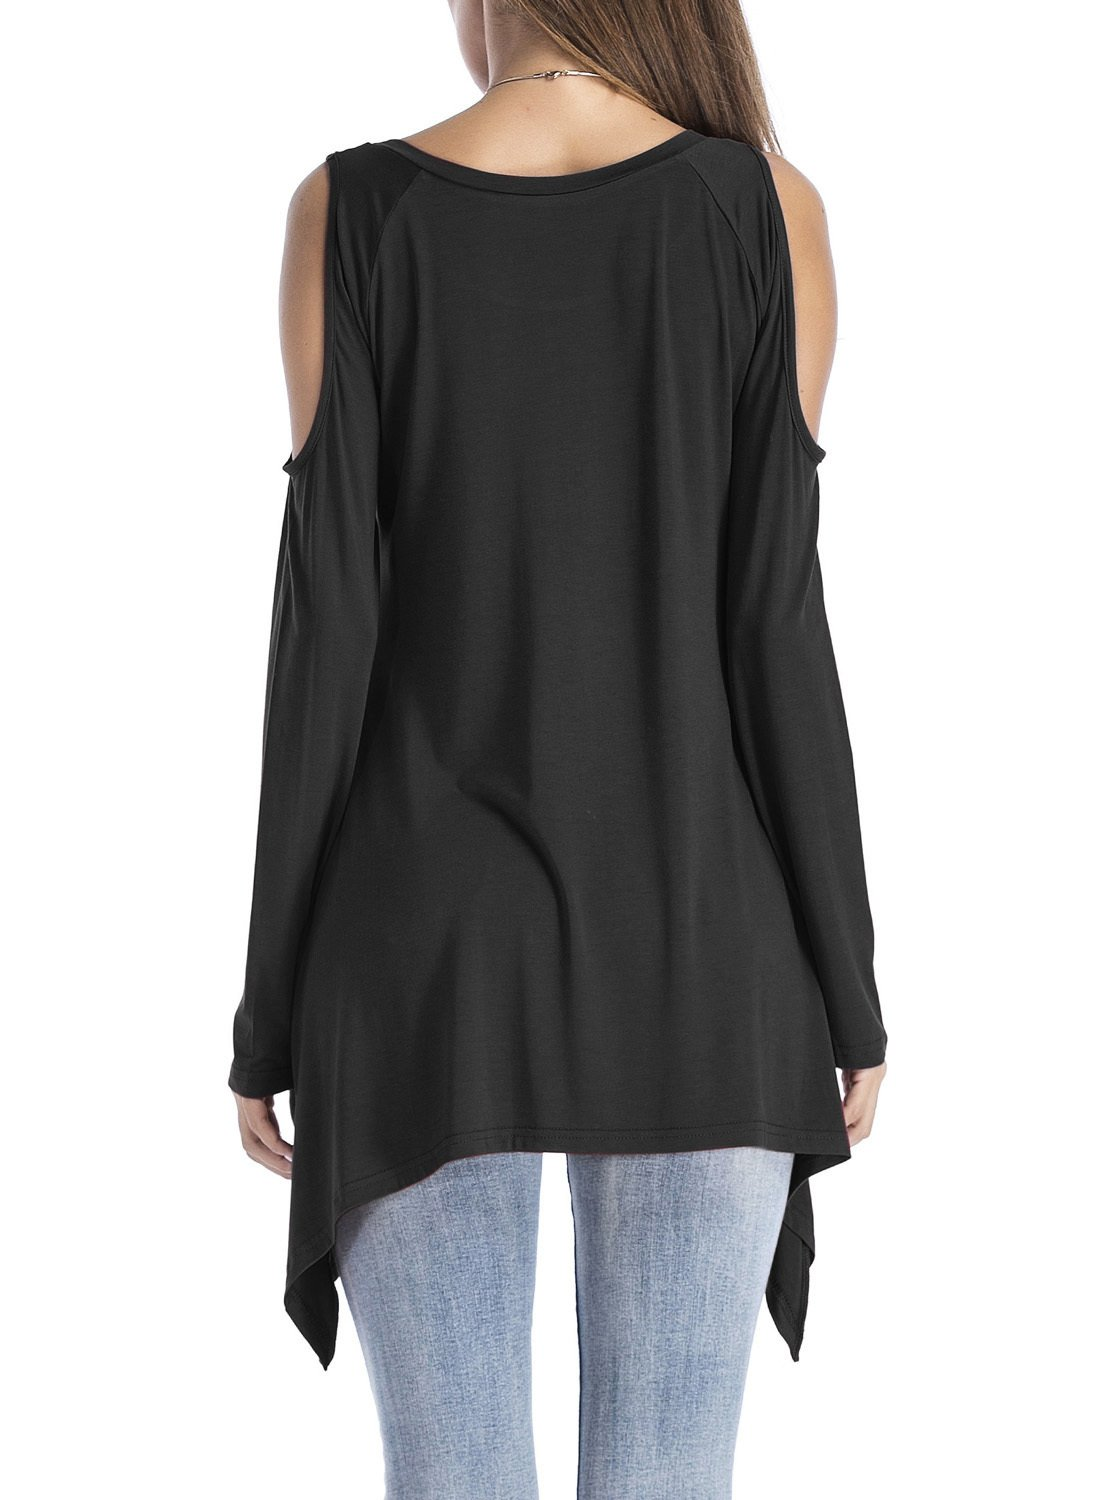 947625d6e969 Women's Cold Shoulder Long Sleeve Swing Loose Fit T-Shirt Tunic Tops Black  Large - ADREAMLYZSY010-BKL < Tunics < Clothing, Shoes & Jewelry - tibs